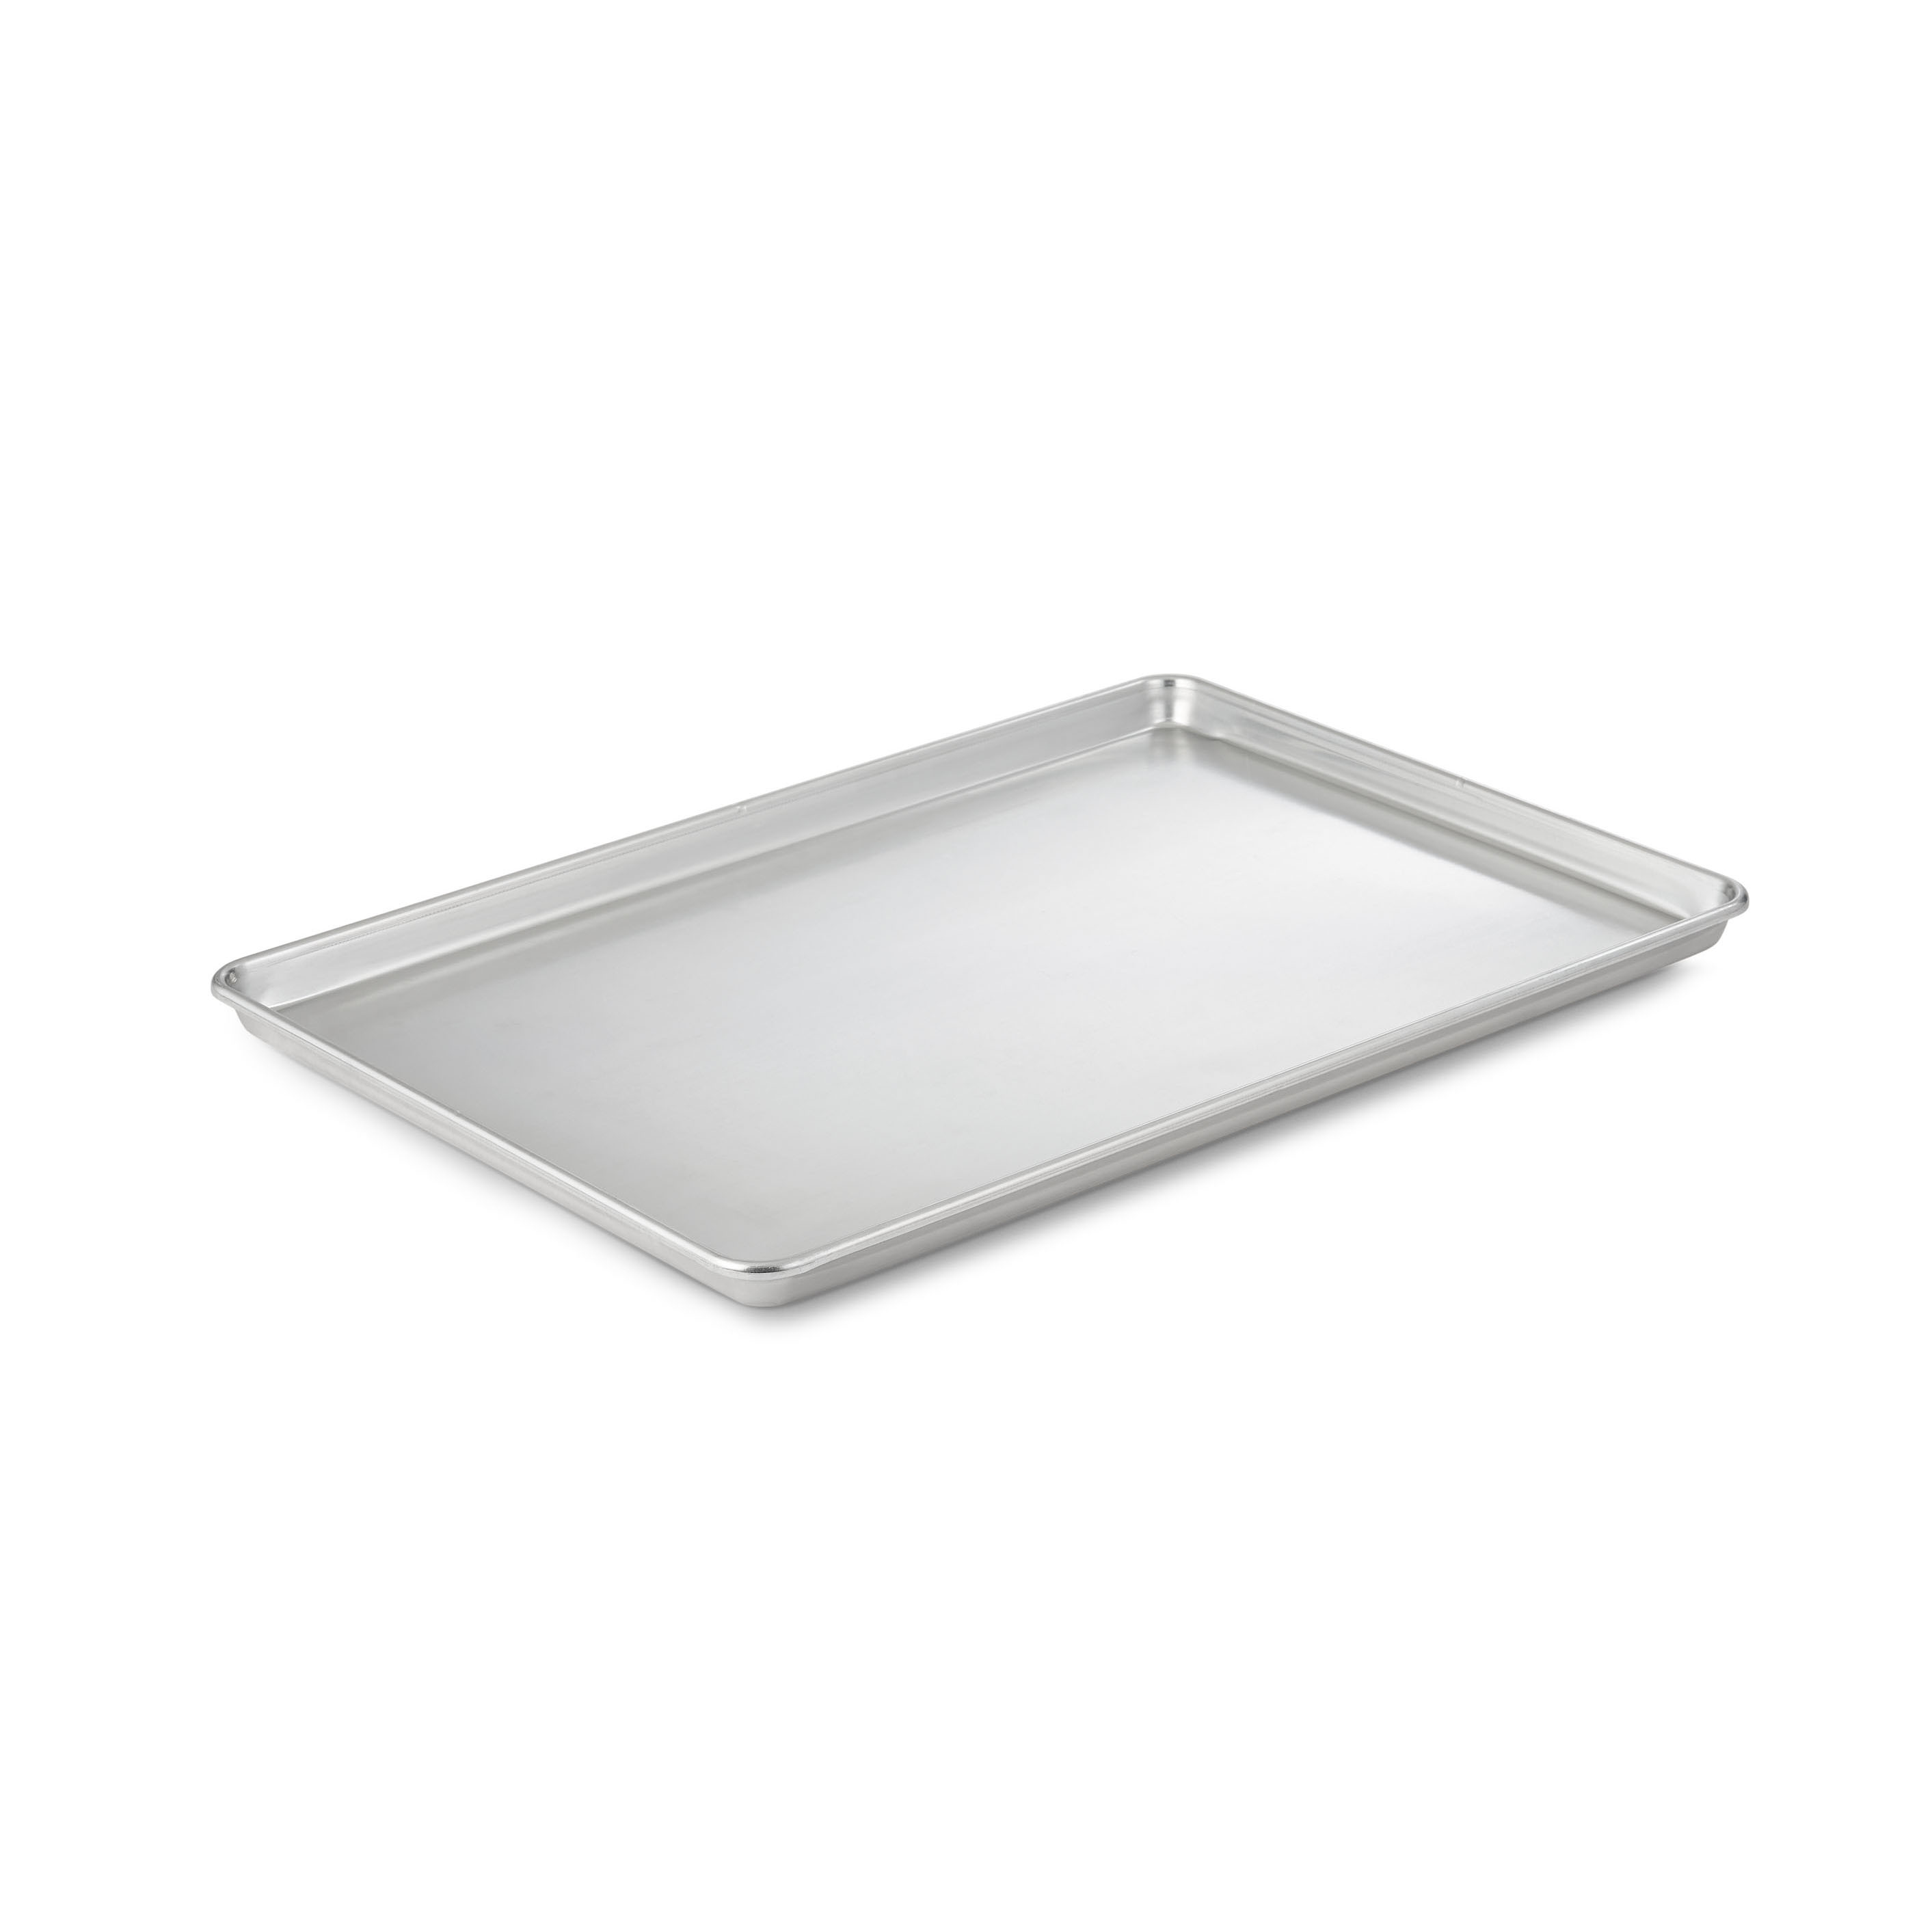 Vollrath 939001 bun / sheet pan